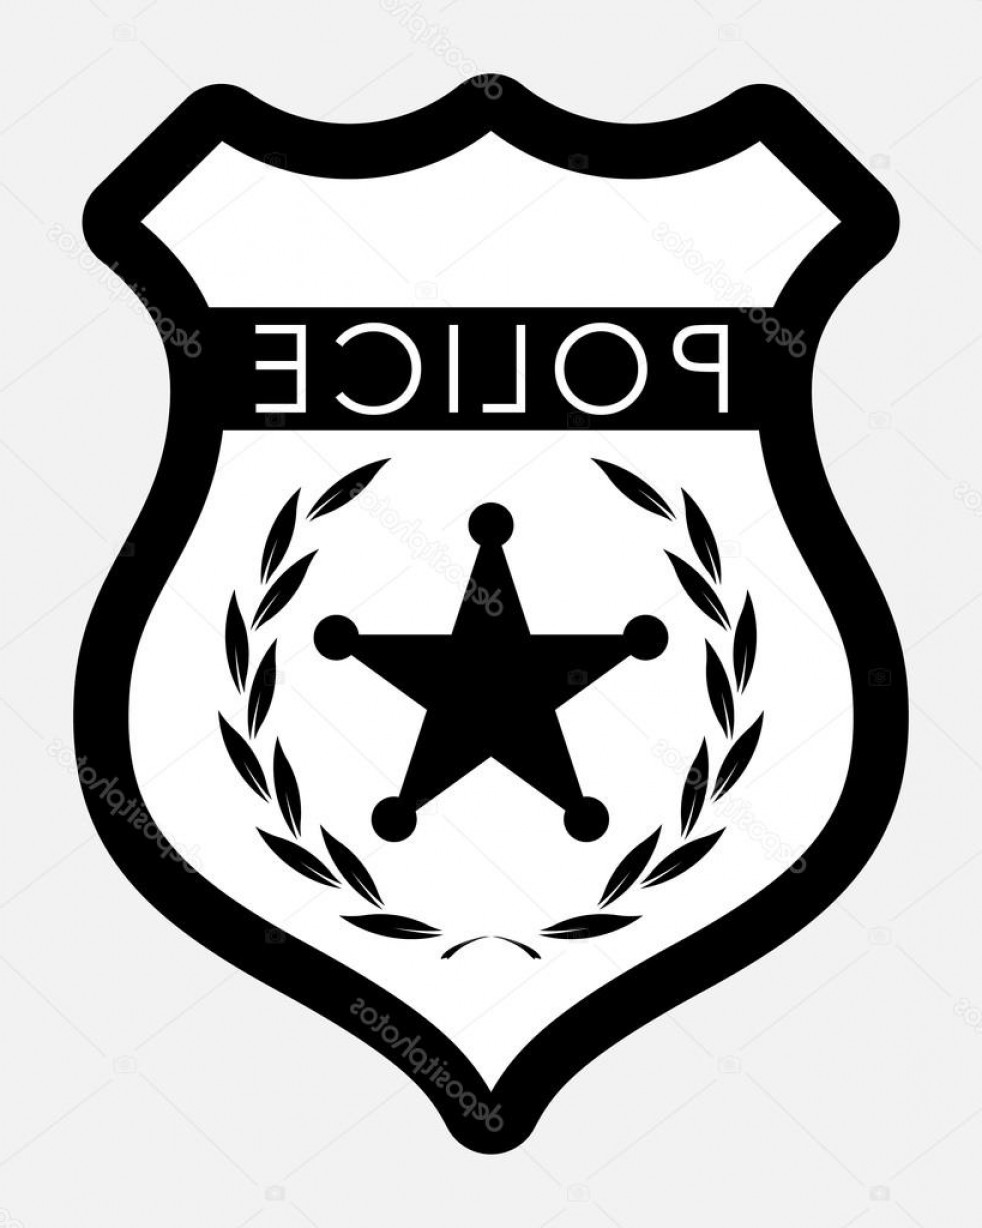 Law Enforcement Badges Vector: Stock Illustration Vector Police Badge Isolated Illustration